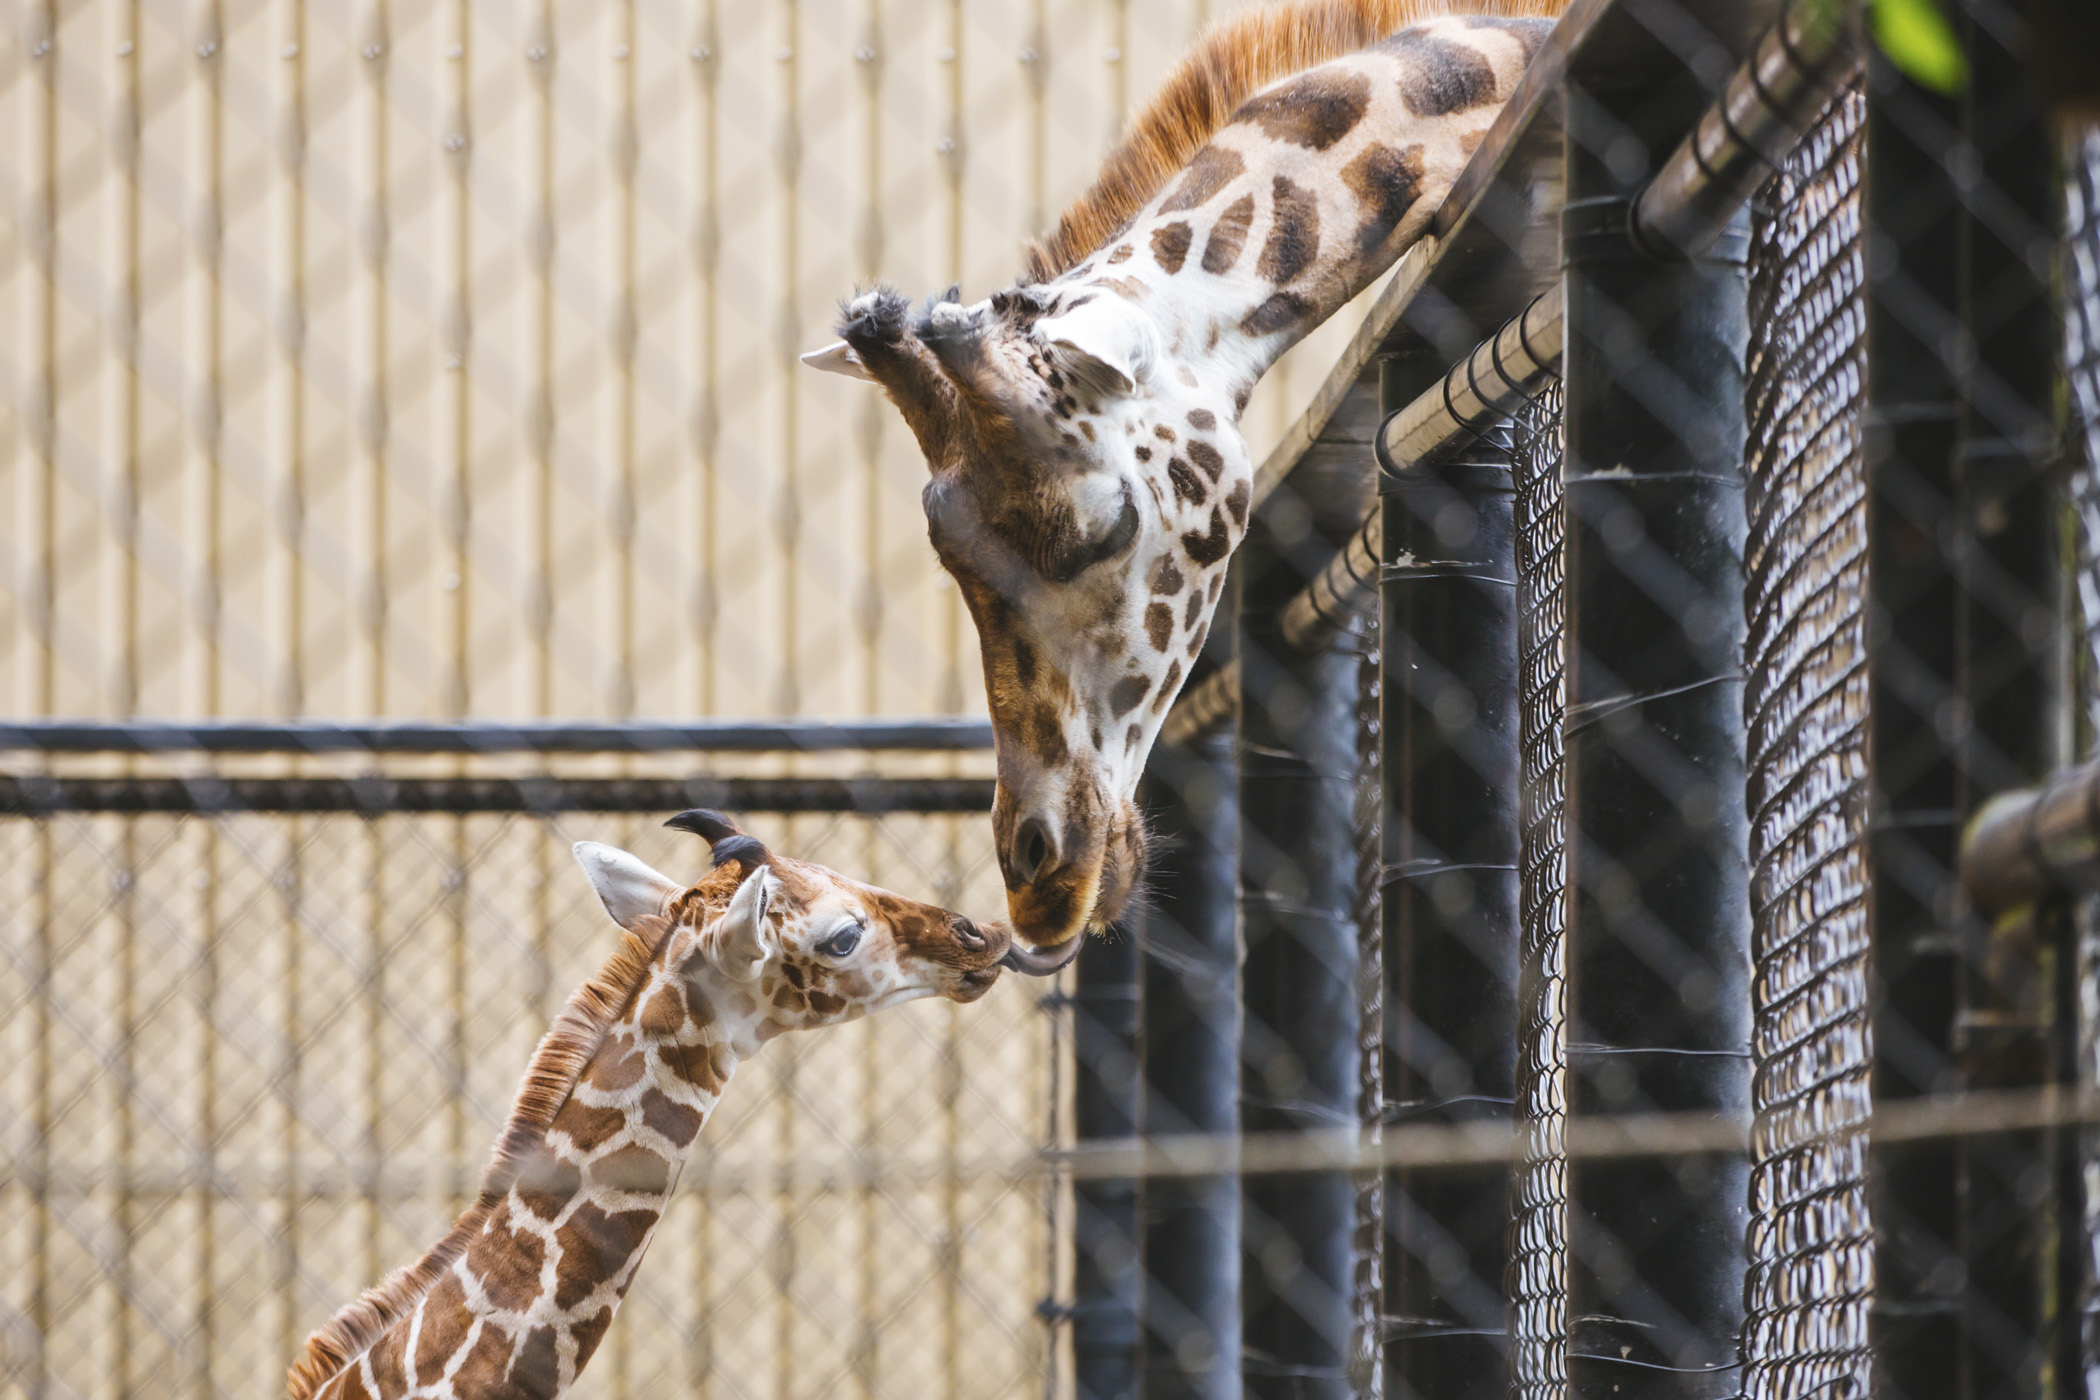 Meet Hasani, the zoo's newest giraffe - born on May 2, 2019 at the Woodland Park Zoo to mom, Olivia. After birth, the zoo's team noticed Hasani's rear foot wasn't in normal alignment, and immediately got him into casts to help stabilize the limbs. A Kentucky specialist visited Hasani, and crafted custom shoes to do the heavy lifting in the next phase of treatment of the baby'r rear leg abnormalities. (Image: Sunita Martini / Seattle Refined)